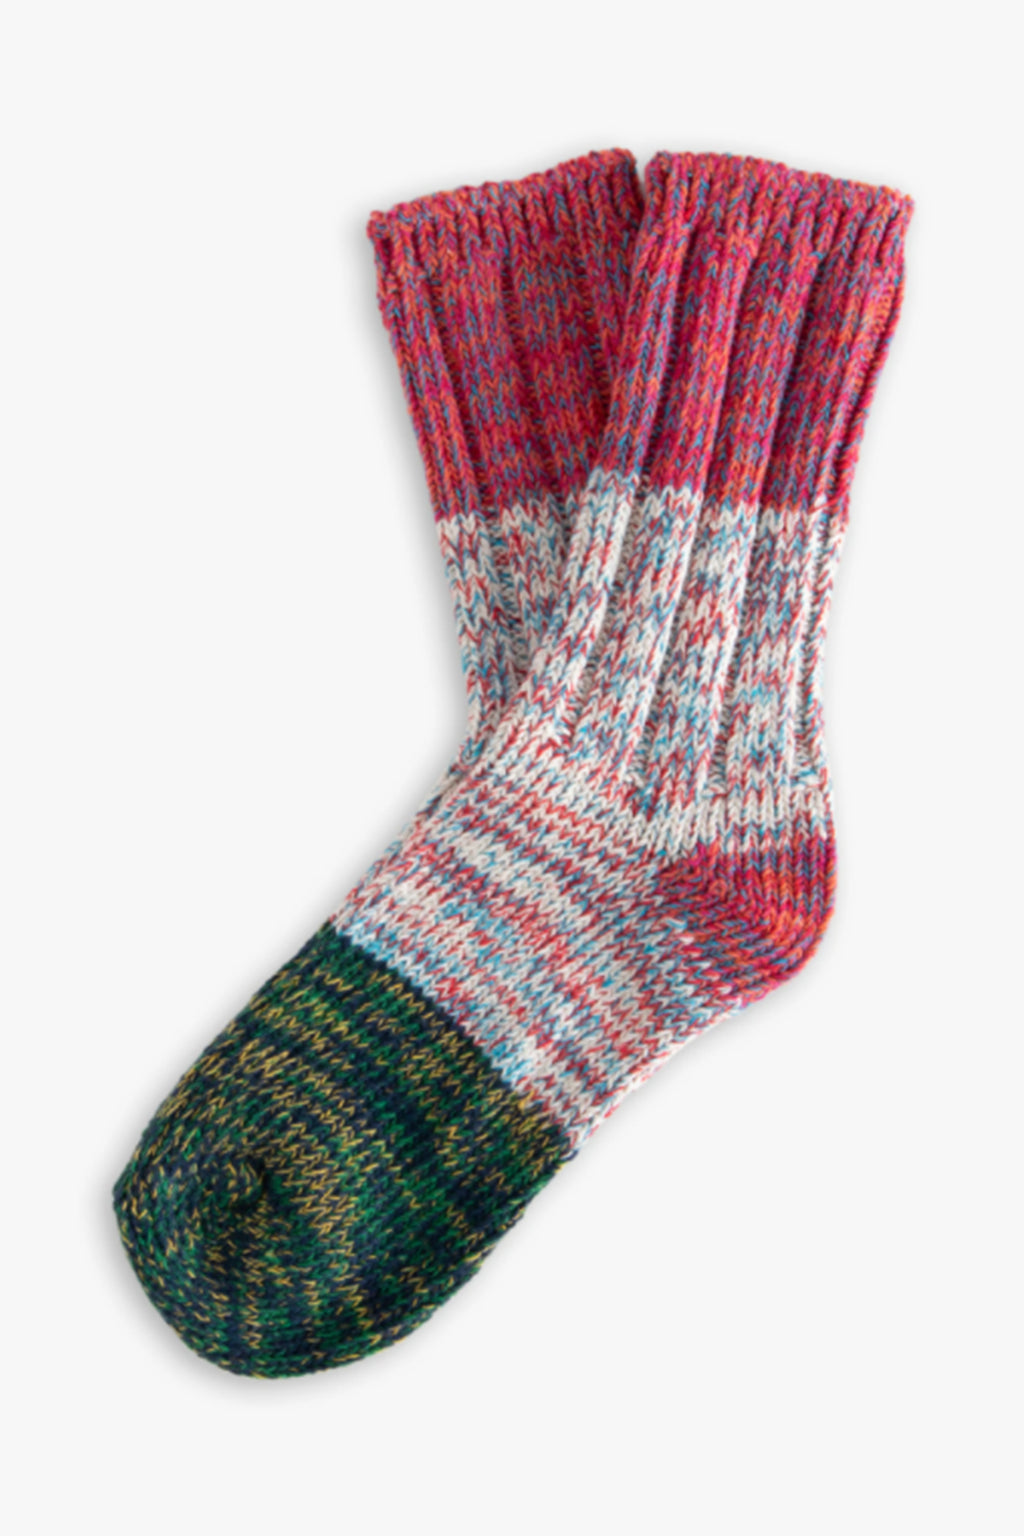 Thunders Love Clara Socks - The Mercantile London